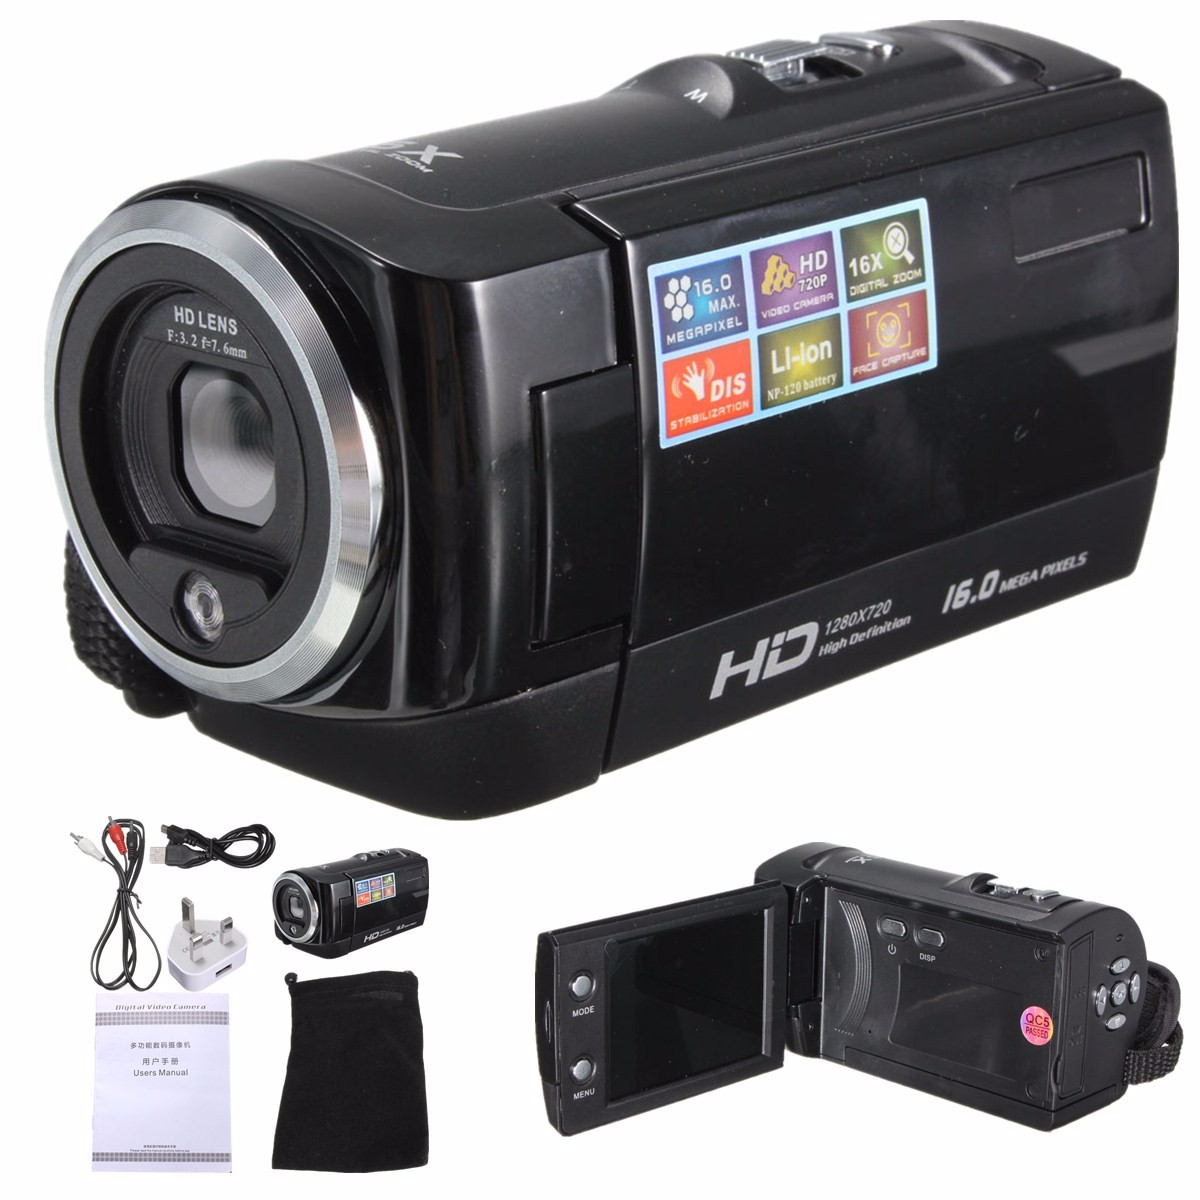 HD720P Digital Video Camera 27 LCD Touchscreen Camcorder DV Sport DVR 16MP ZOOM 170 A HD Wide Angle Lens